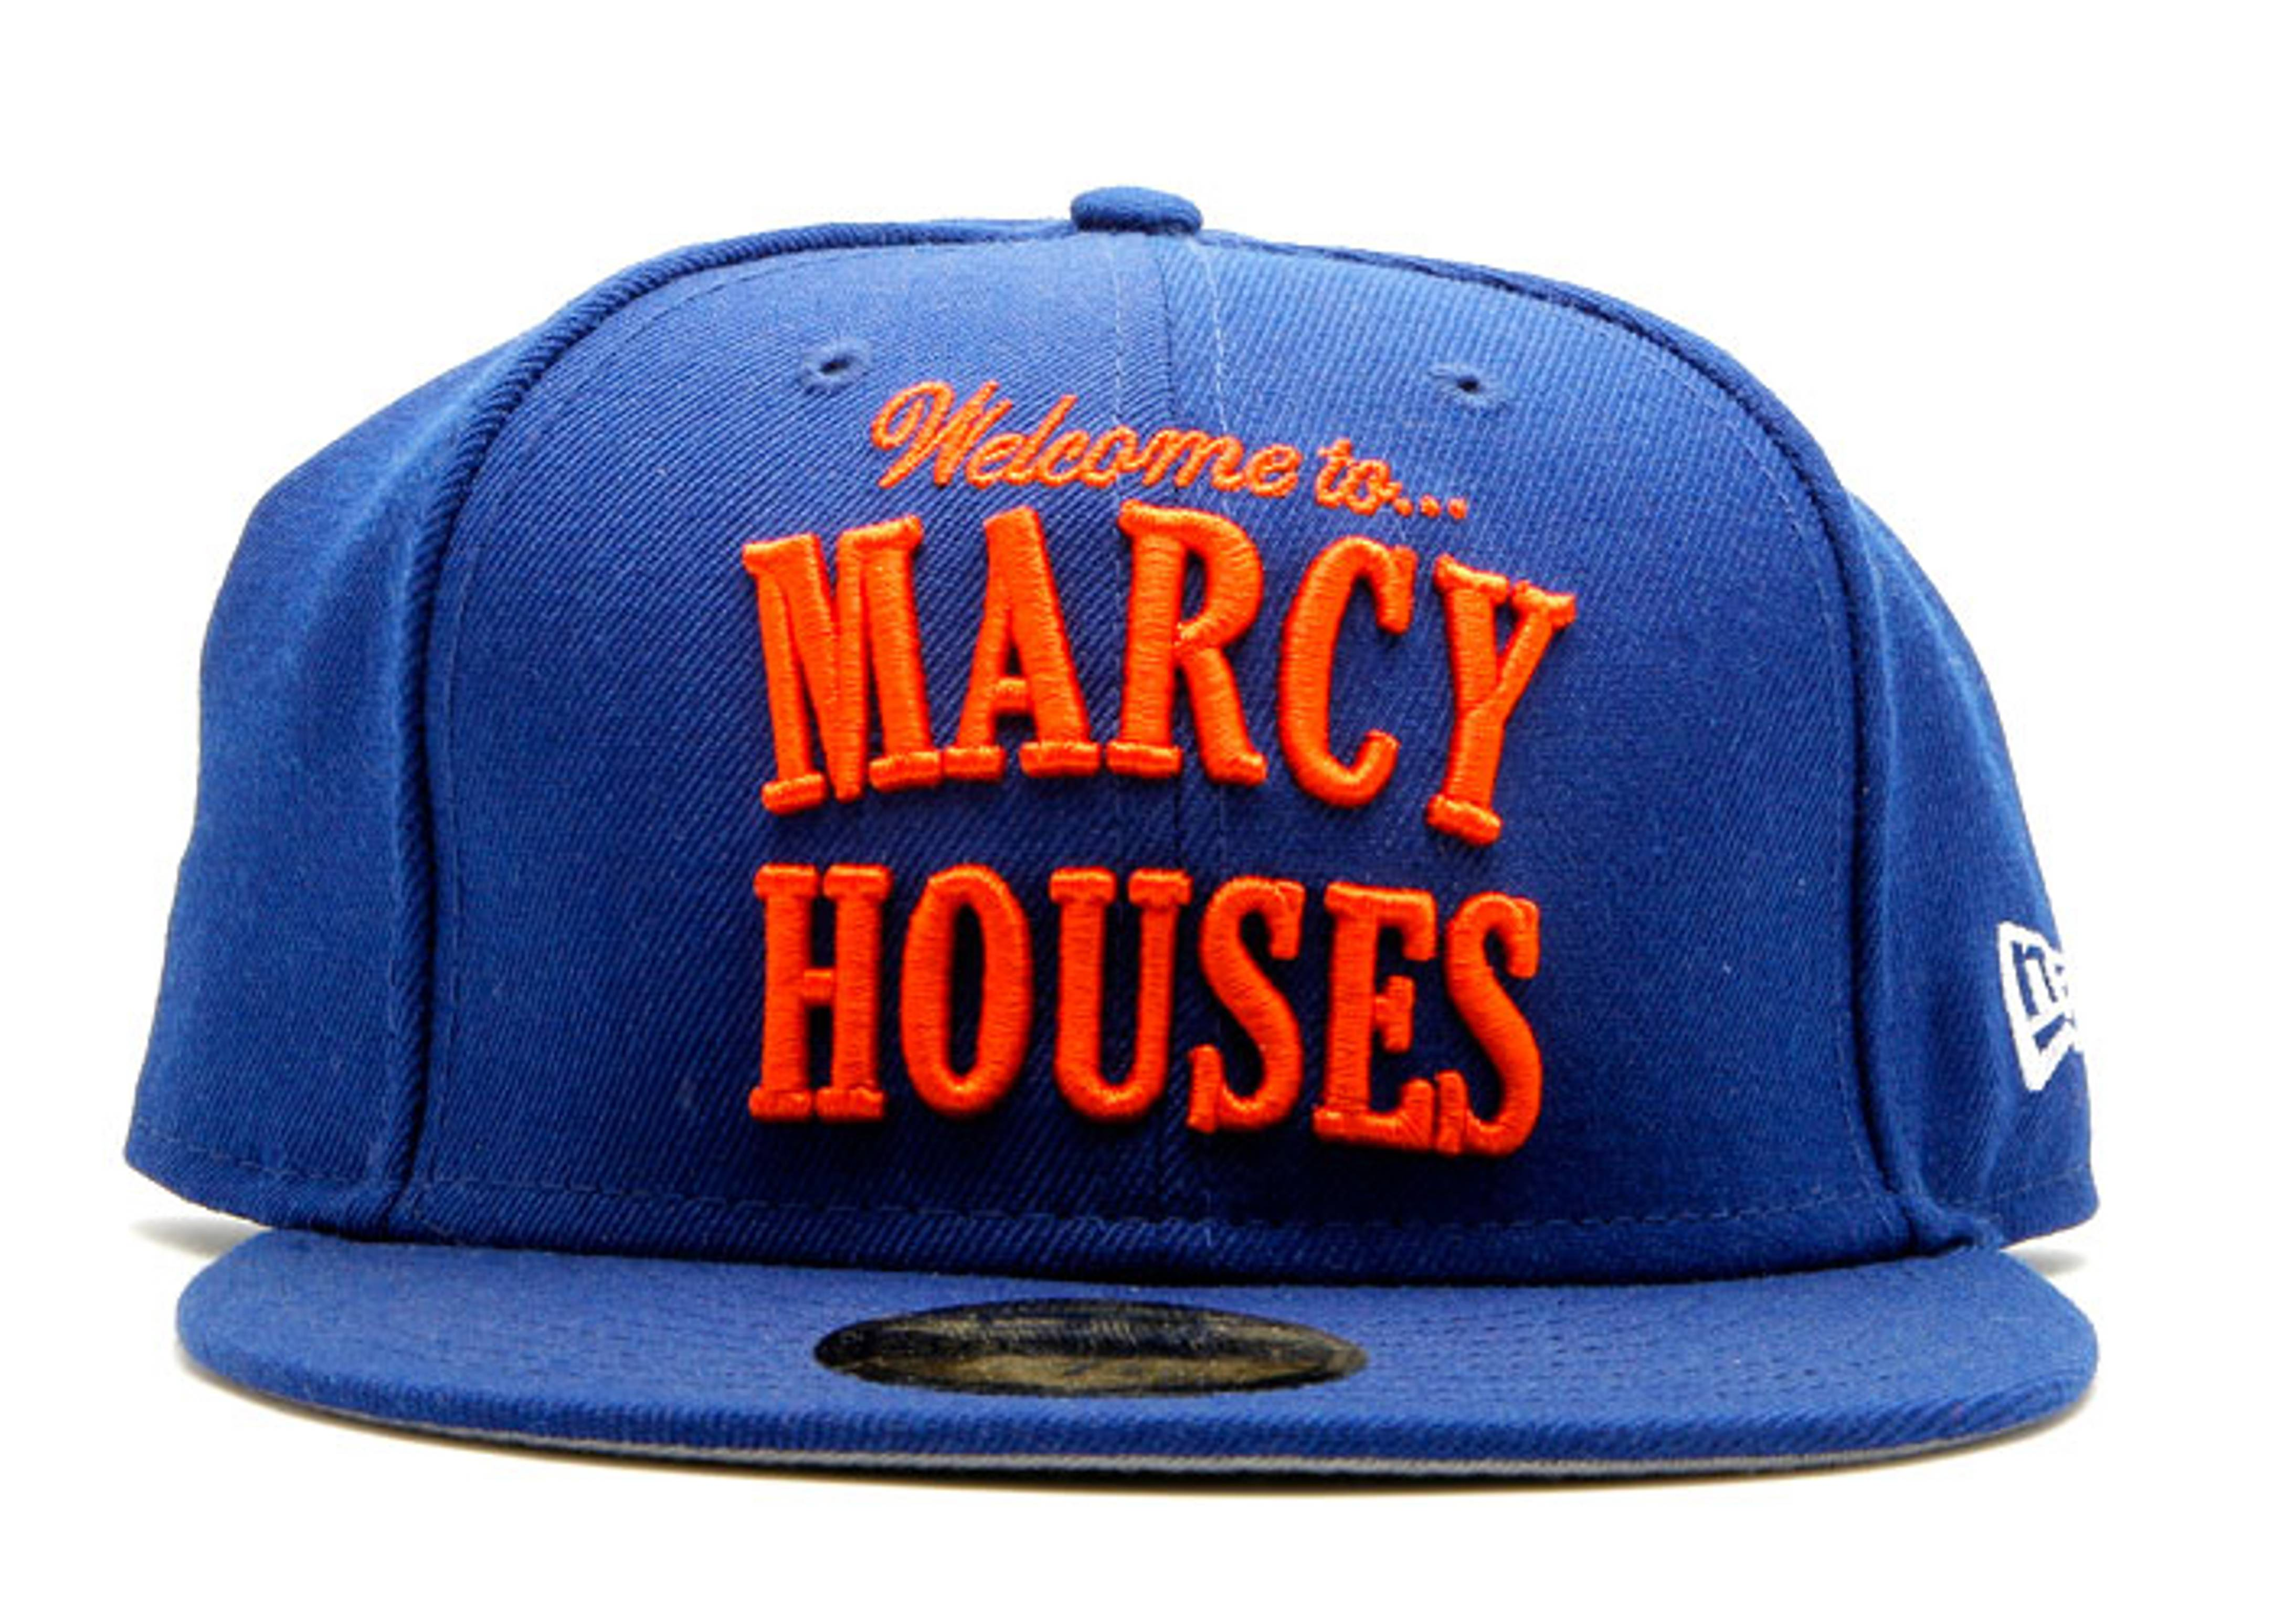 """new era fitted """"marcy houses"""""""